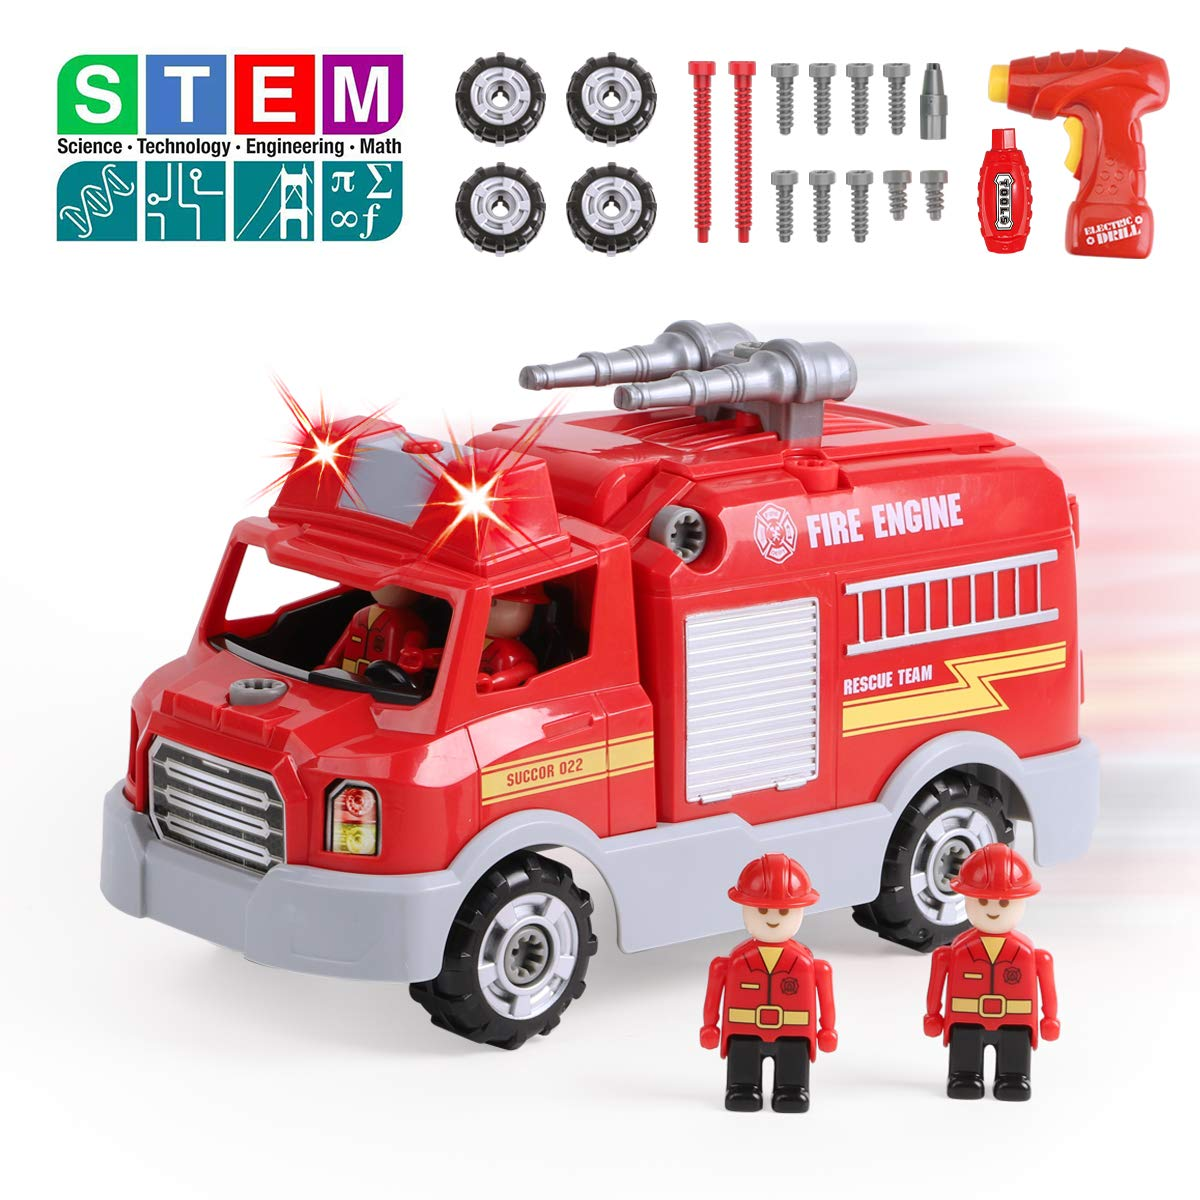 REMOKING STEM Learning Take Apart Toy for Boys & Girls, Build Your Own Car Toy Fire Truck Educational Playset with Tools and Power Drill, DIY Assembly Car with Realistic Sounds & Lights (3+ Ages) by REMOKING